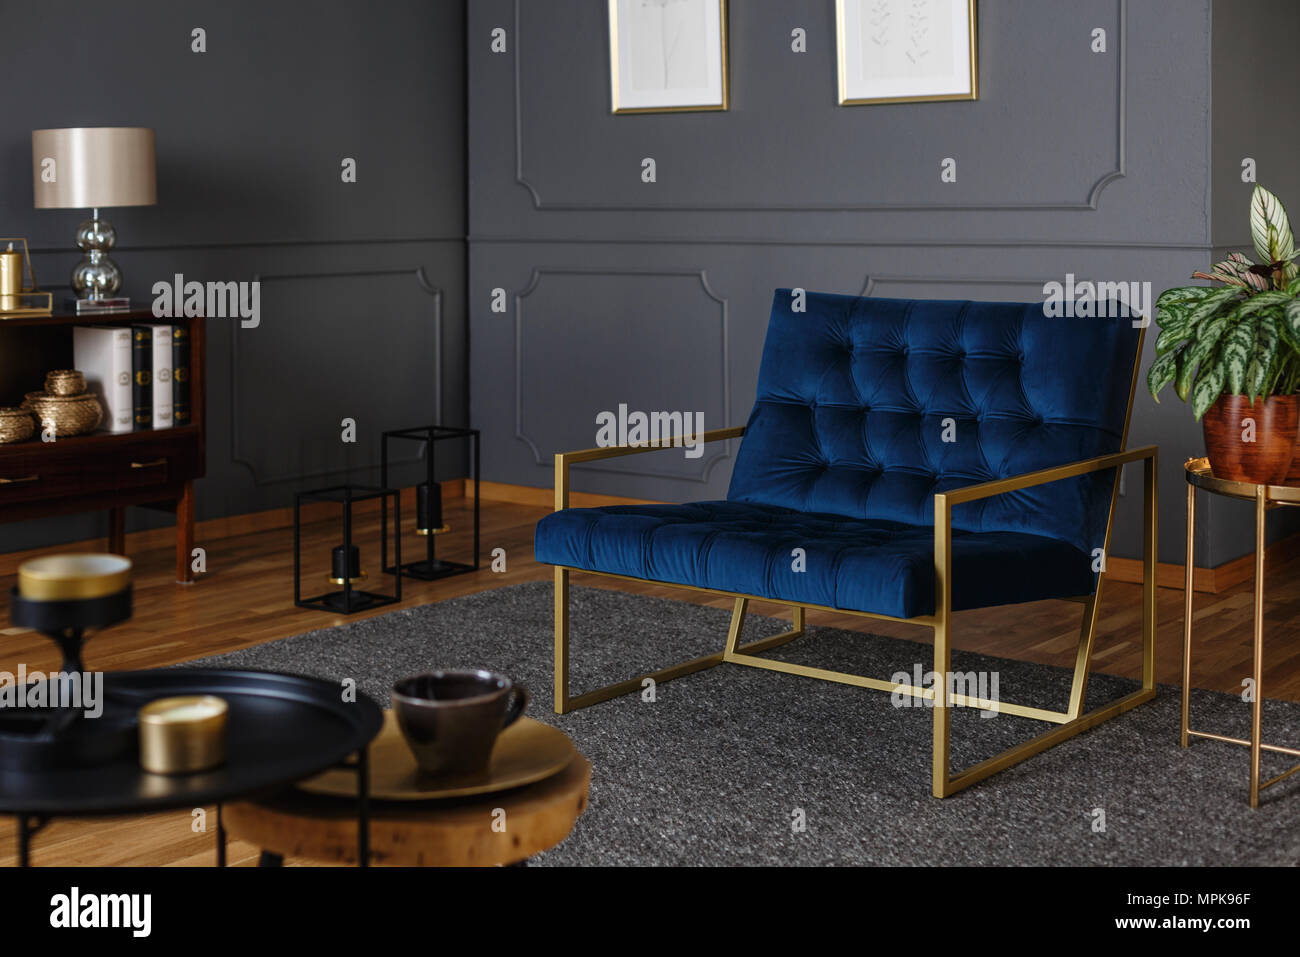 real photo of a large navy blue armchair with golden frame against